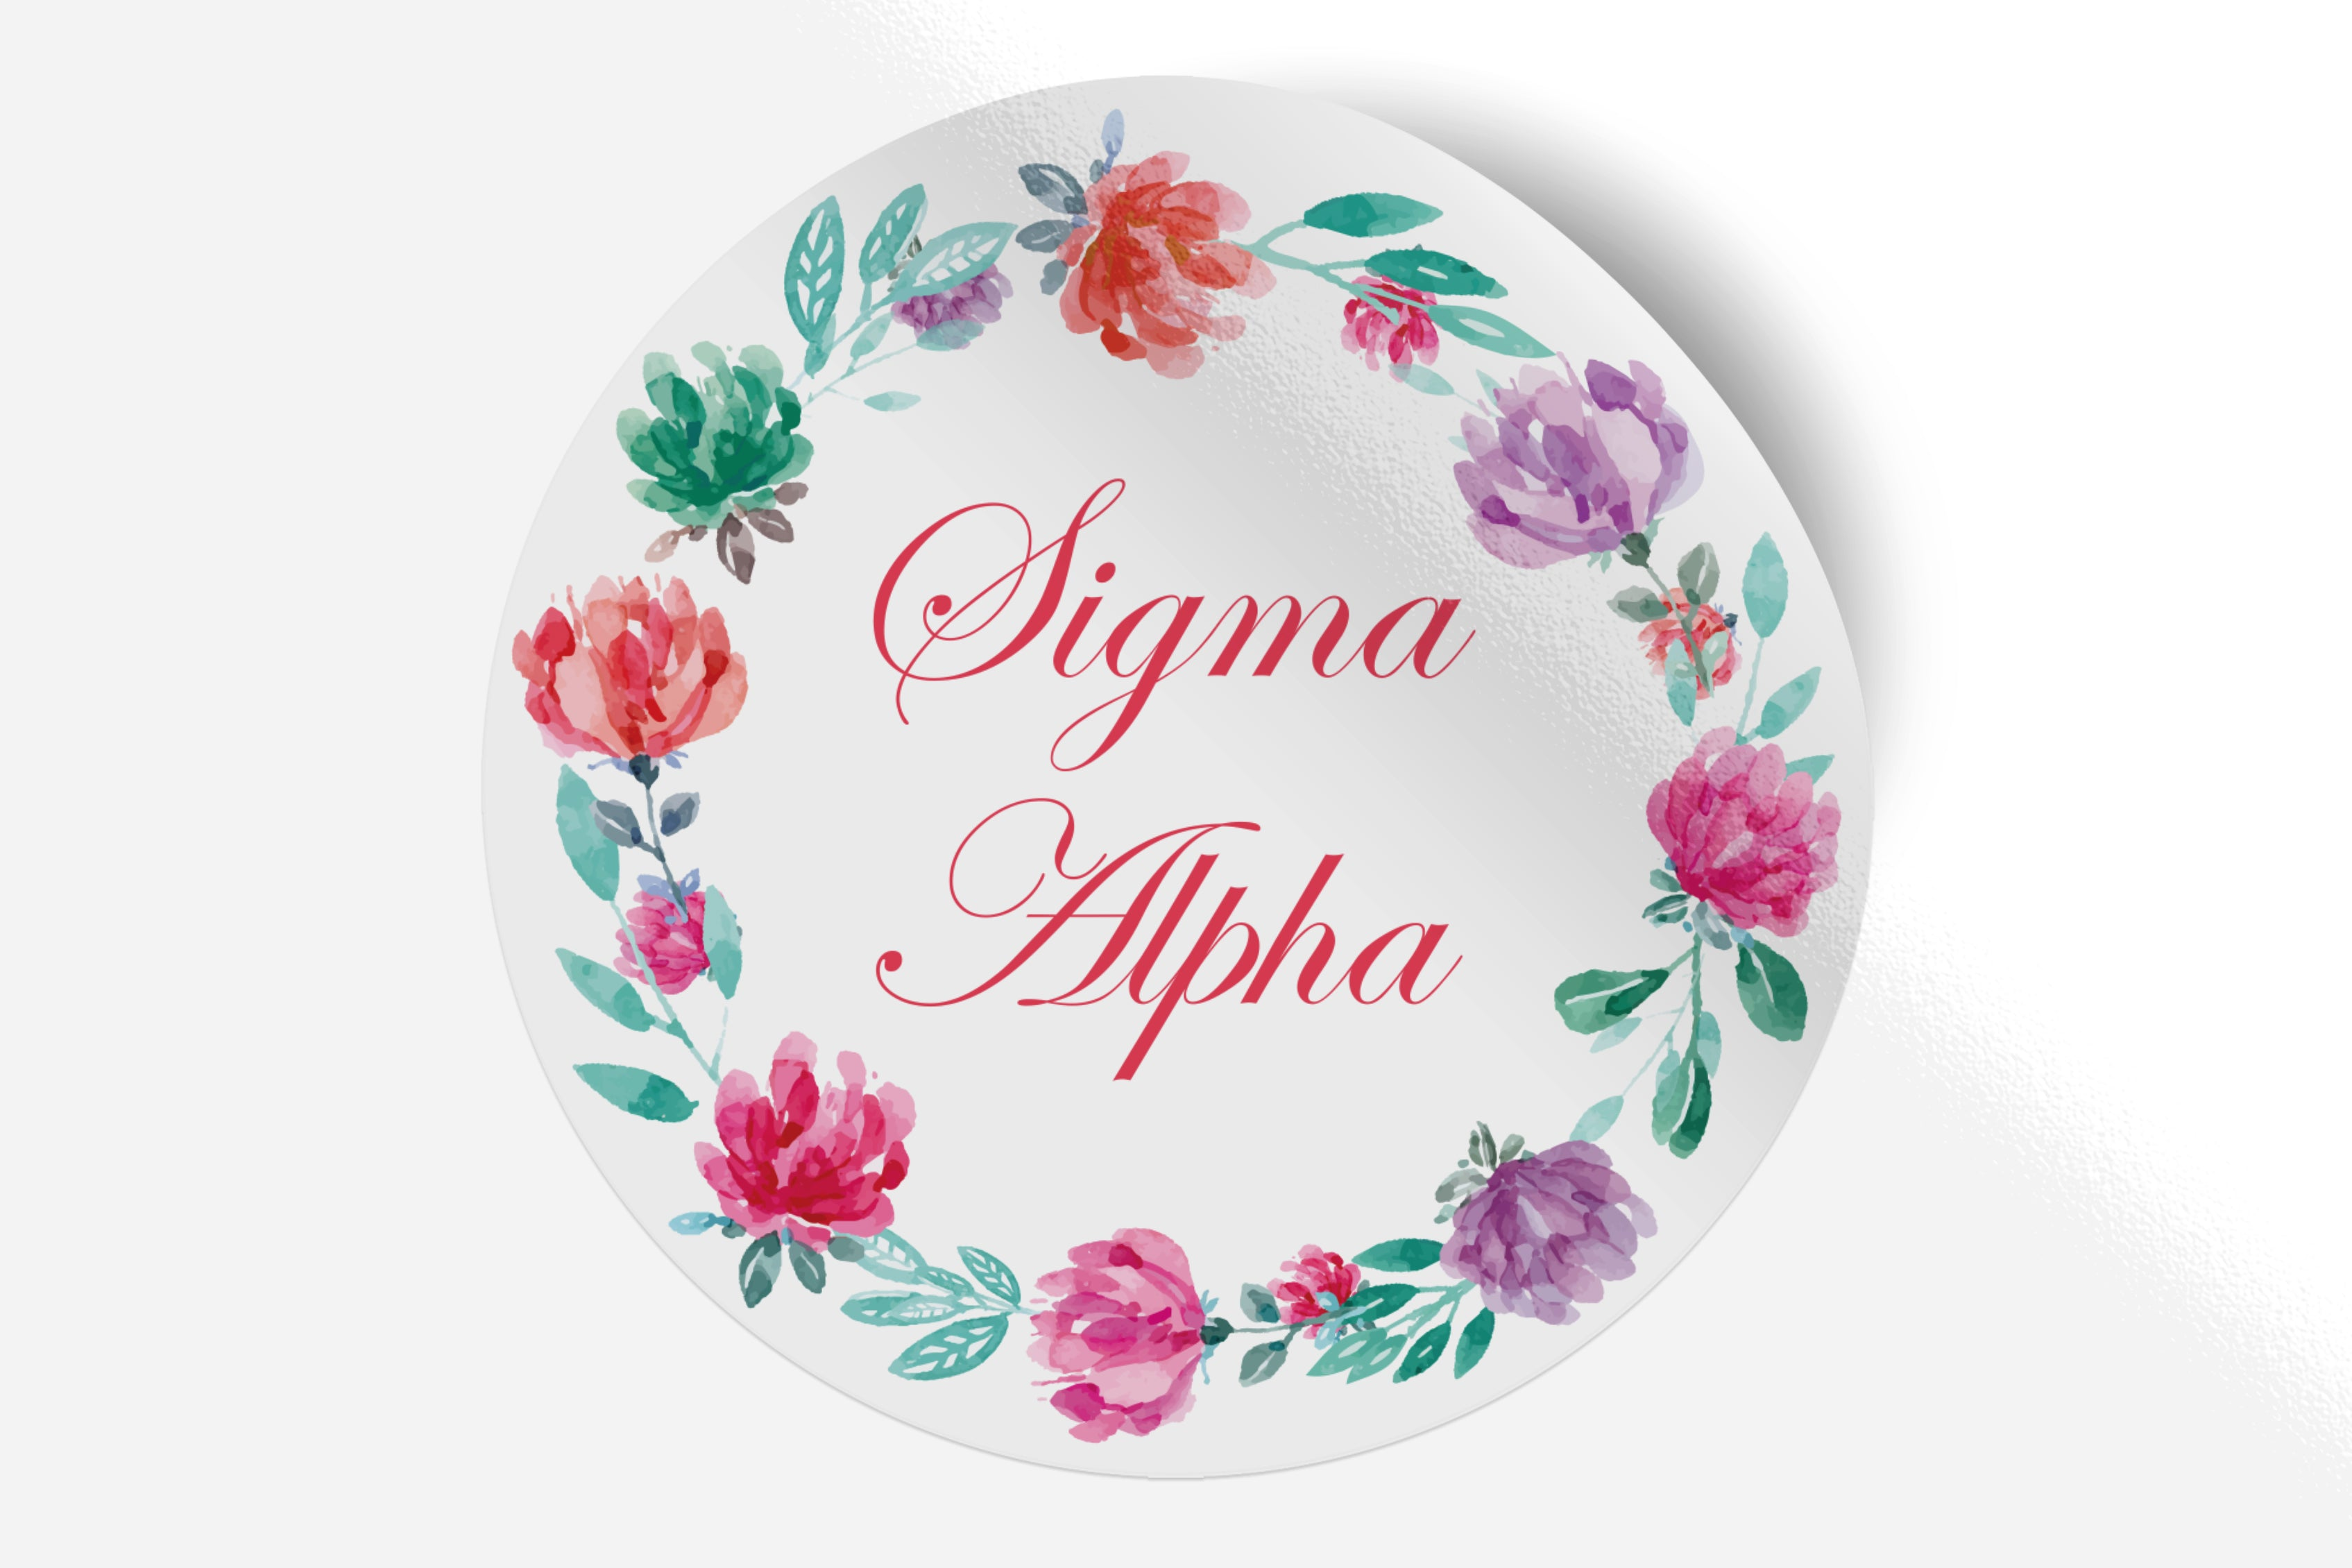 "Sigma Alpha - Watercolor Floral - 5"" Round Sticker"